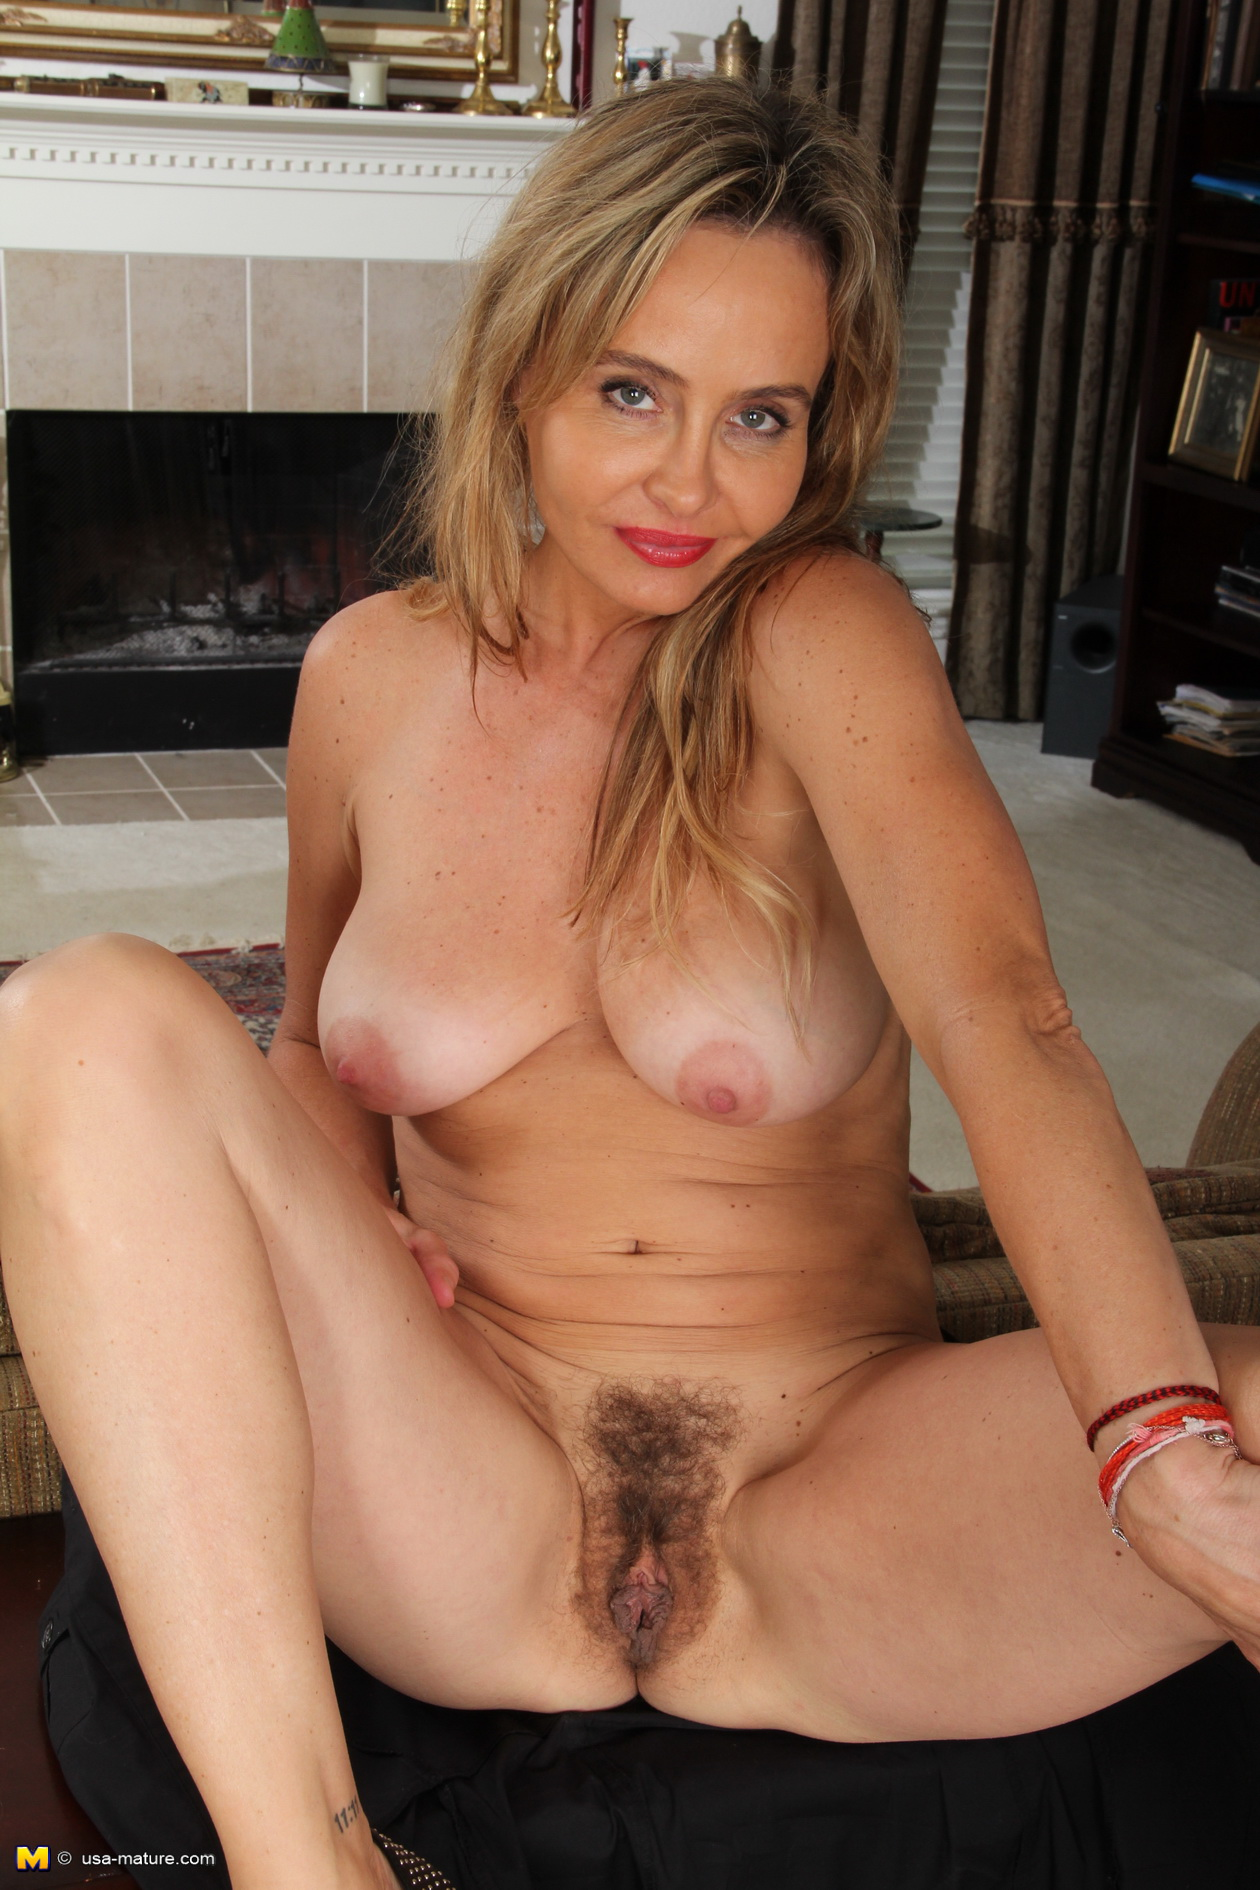 Mature women nude what